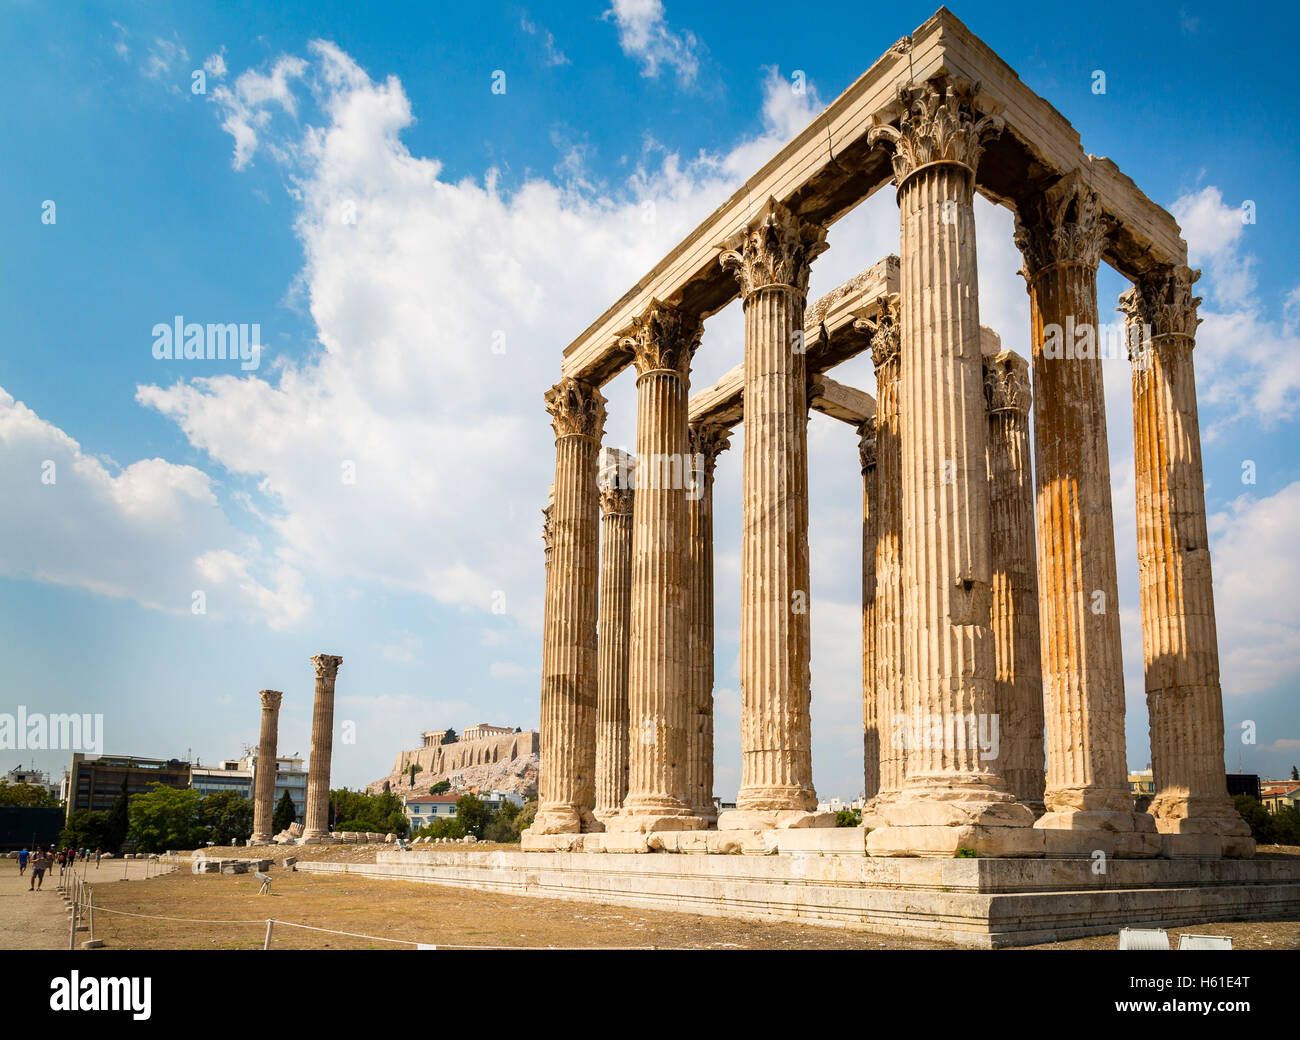 Temple of Olympian Zeus with Parthenon in background. - Stock Image